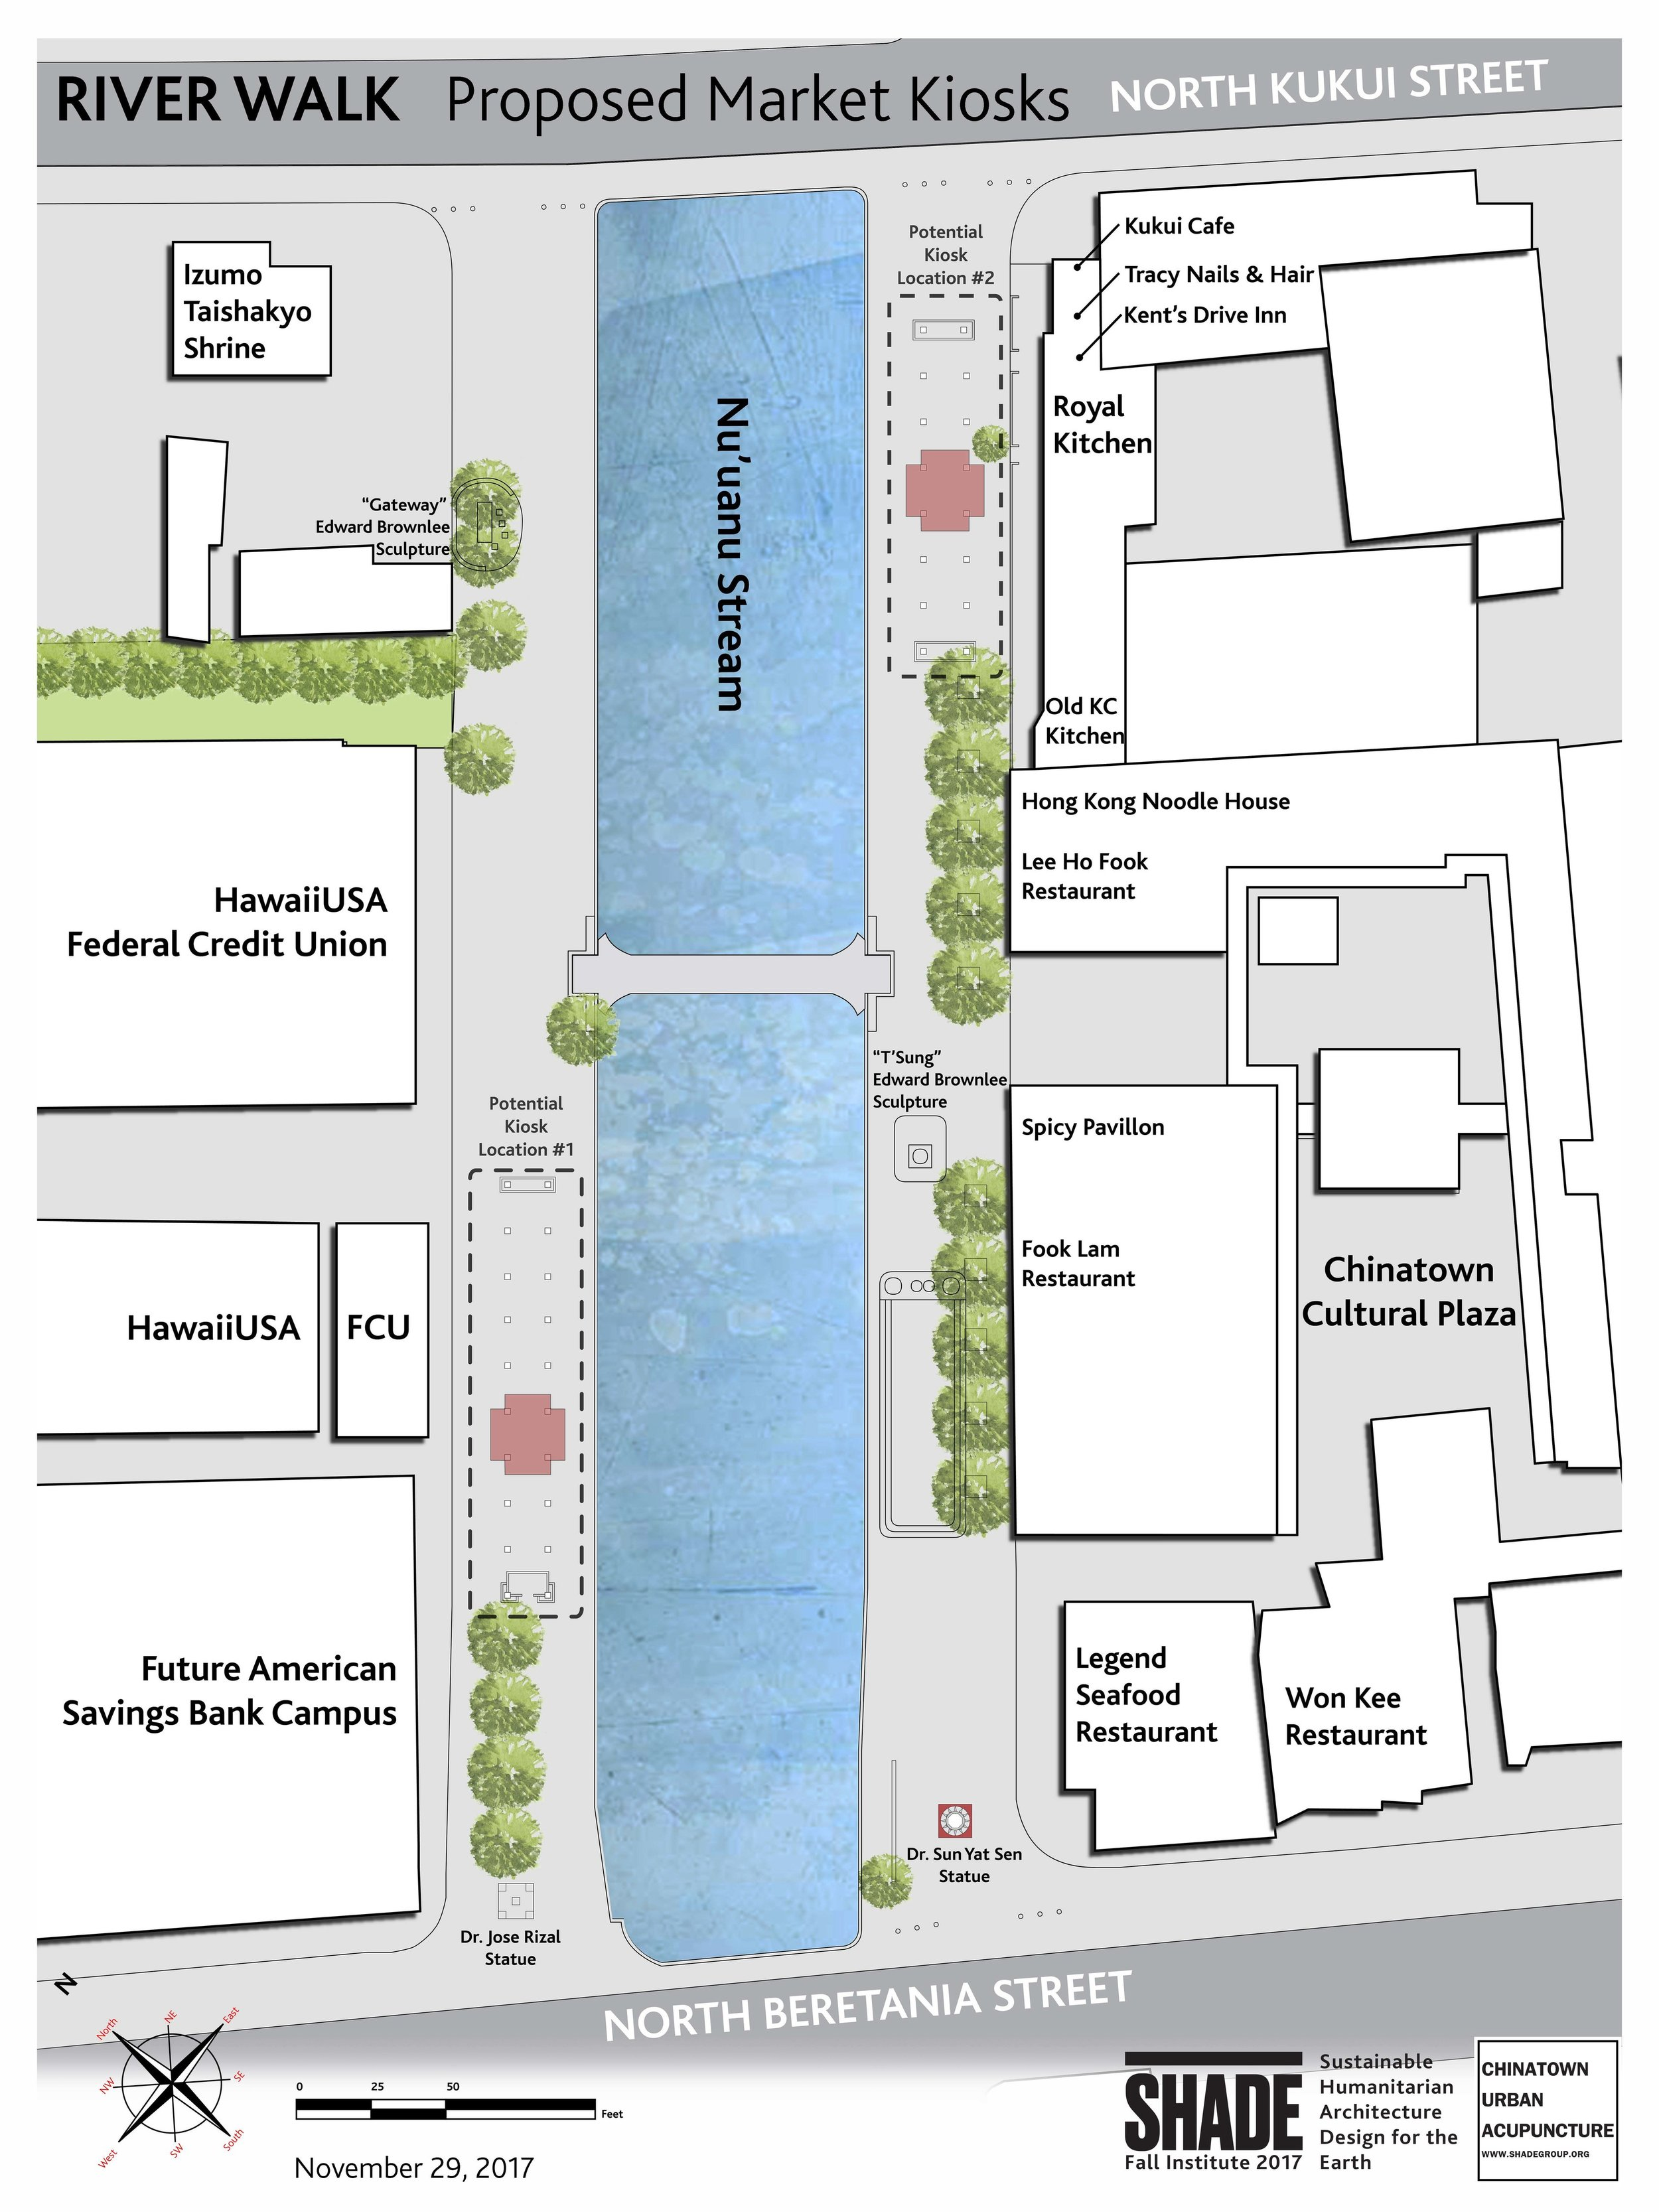 rsz_171122_river_walk_proposed_concept_board.jpg